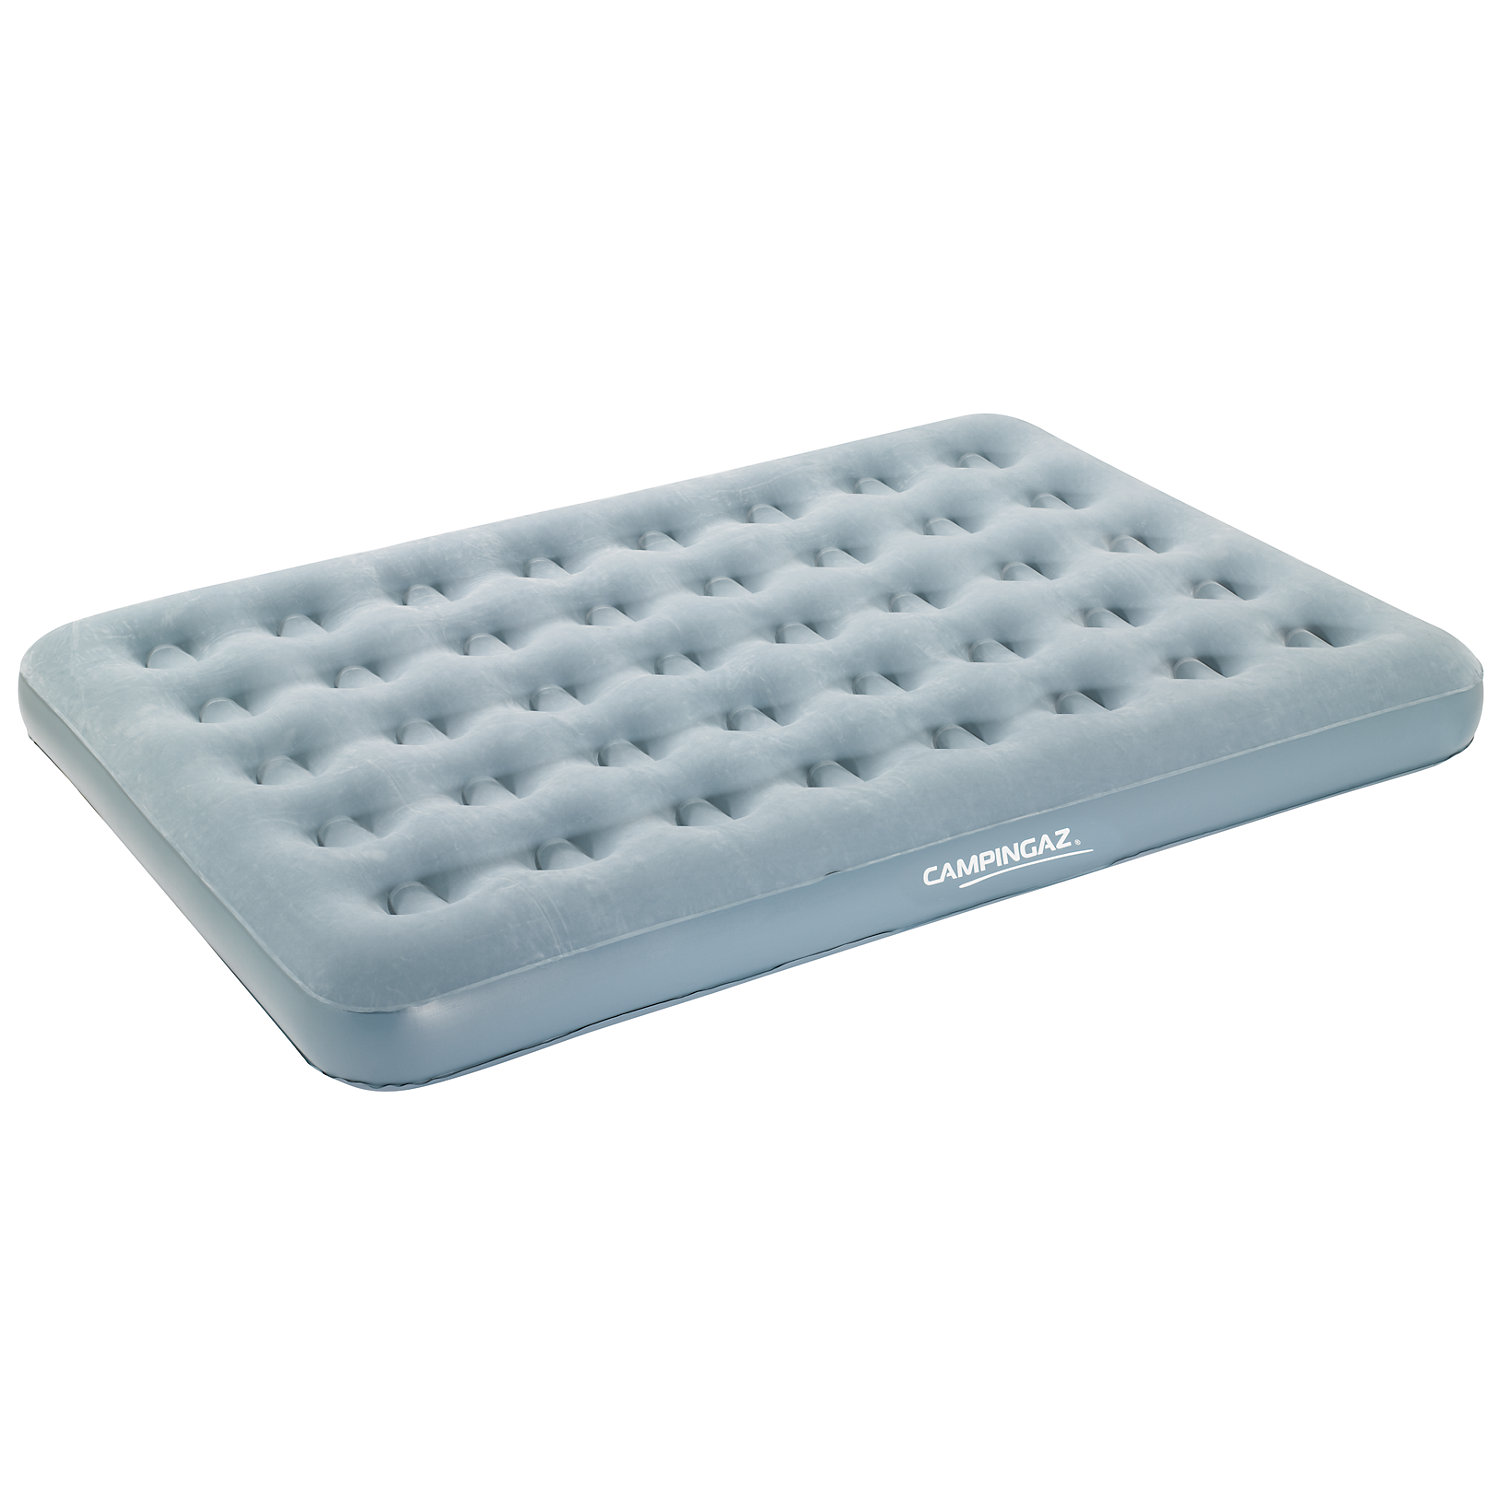 X'tra Quickbed Airbed Double